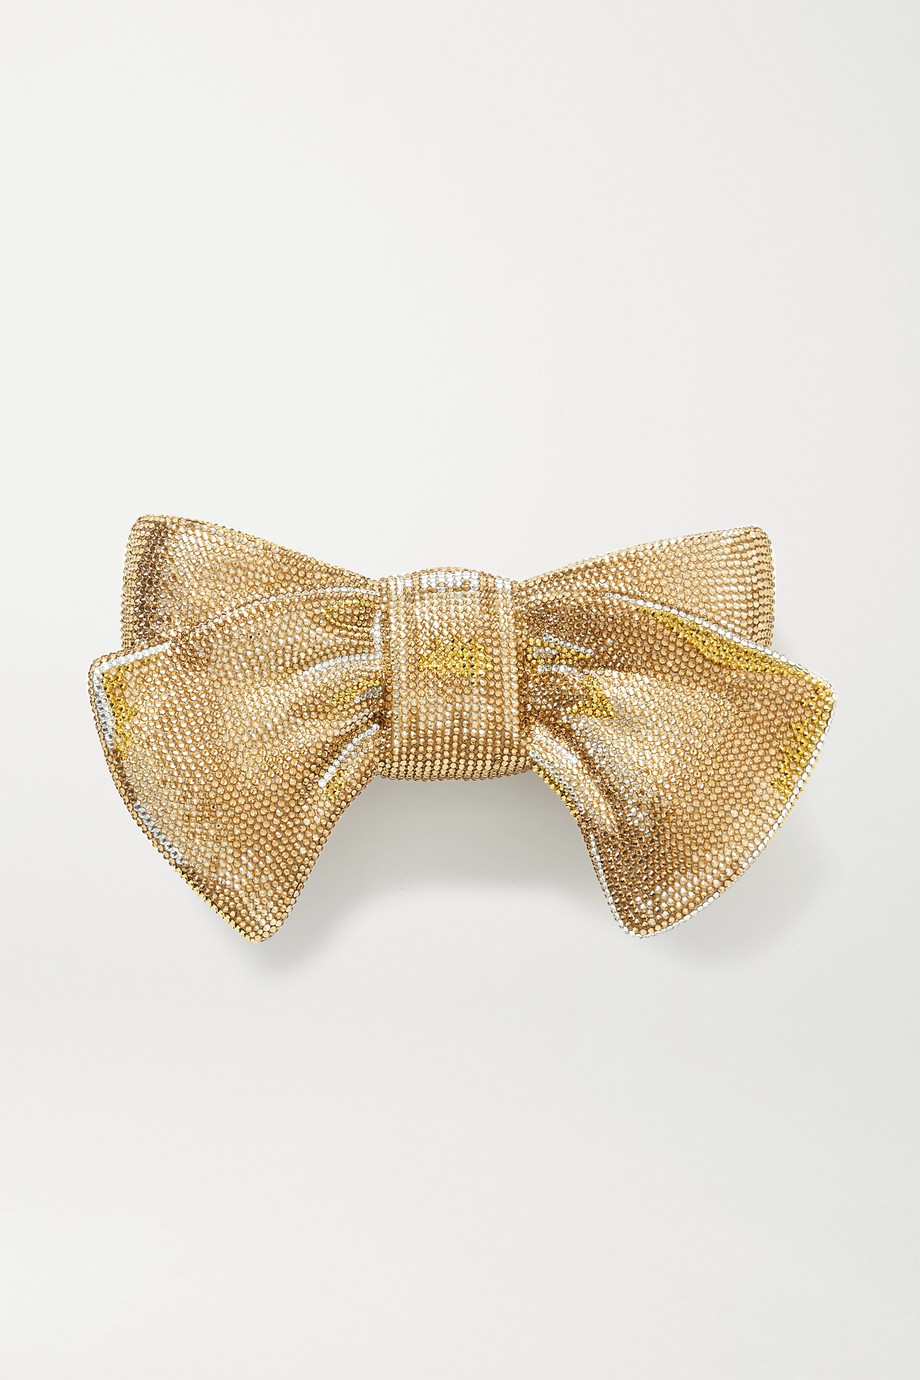 Judith Leiber Couture Bow Just for You 水晶缀饰金色手拿包